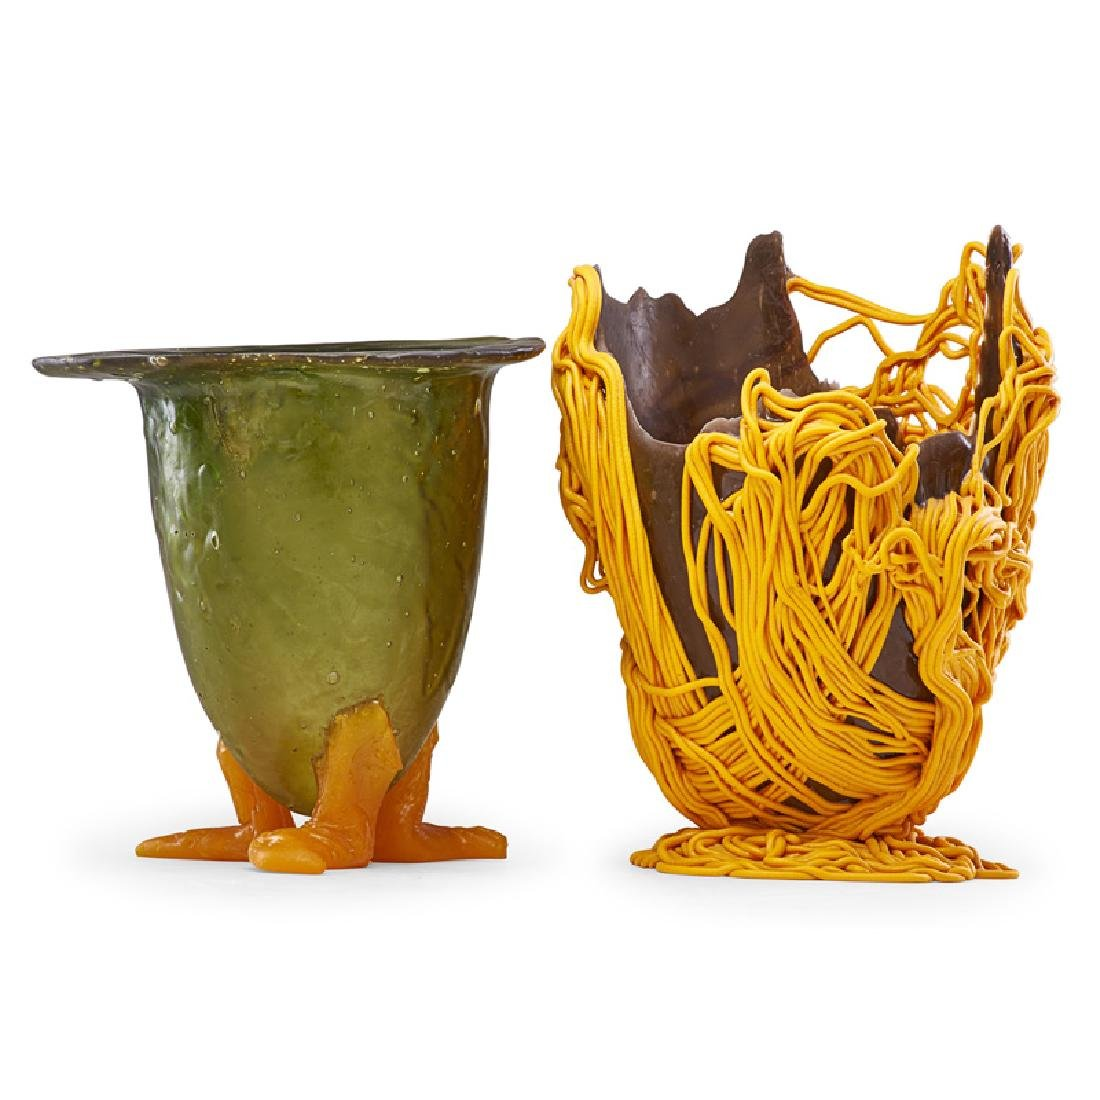 GAETANO PESCE Two resin vessels